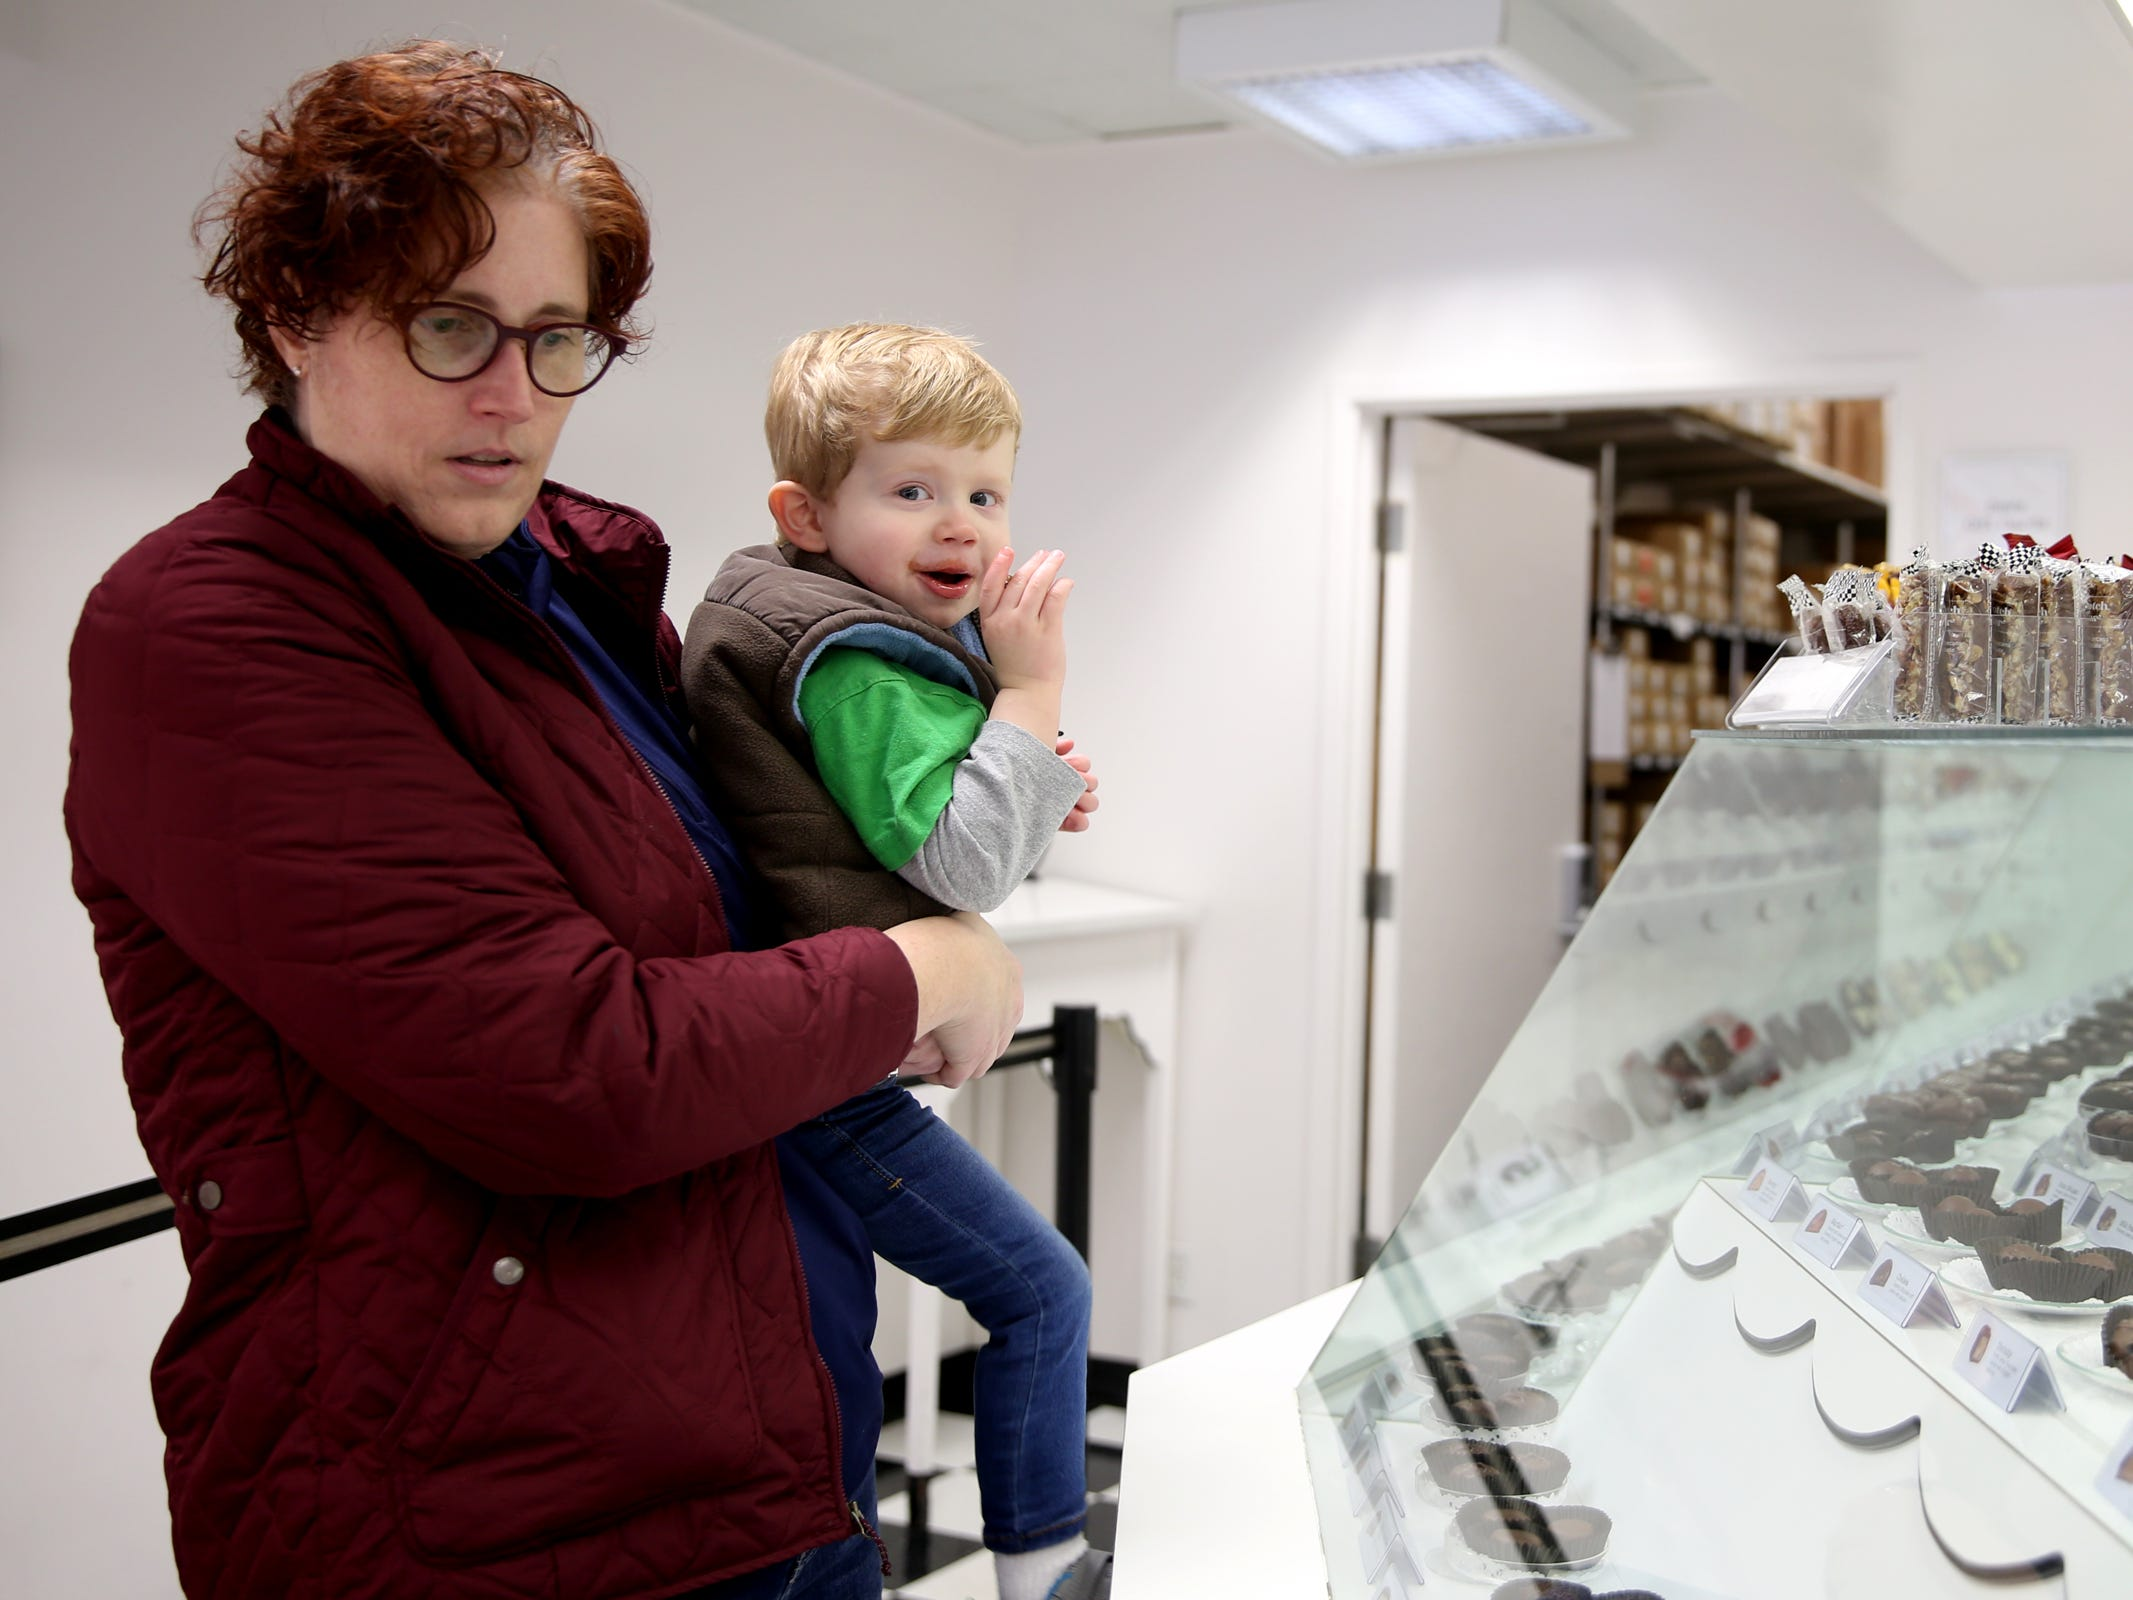 C.J. Wells, 2, nibbles on a free sample as his mom, Natalie Wells, of Salem, picks out chocolates at See's Candies in downtown Salem on Tuesday, Feb. 5, 2019.